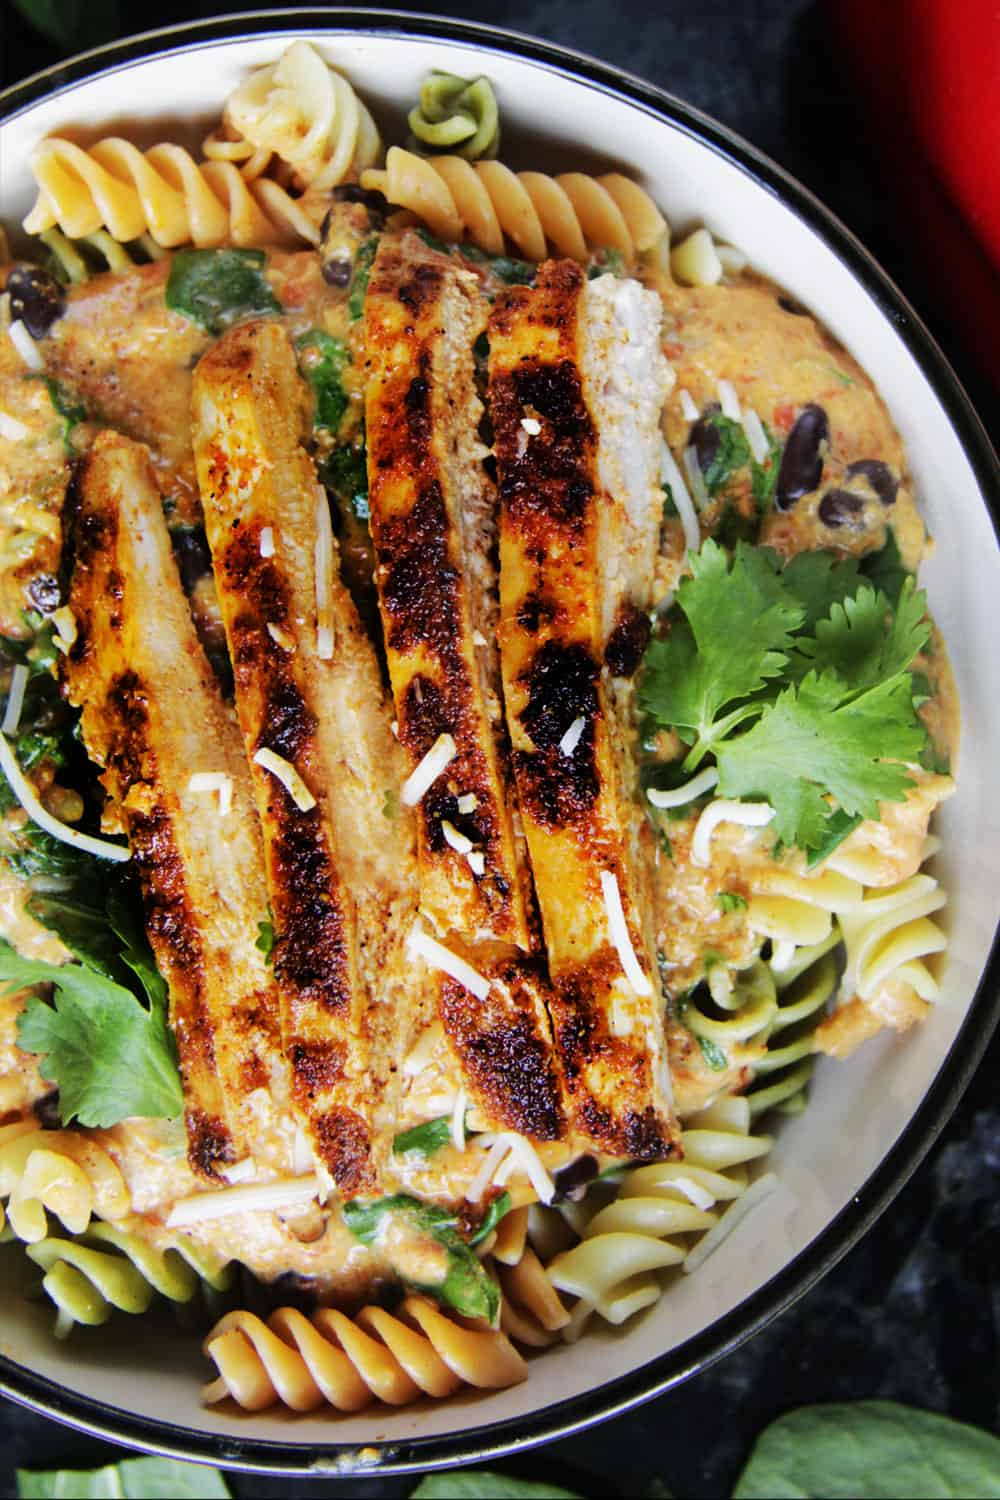 TexMex-Creamy-Roasted-Red-Pepper-Pasta-with-Blackened-Chipotle-Chicken-08